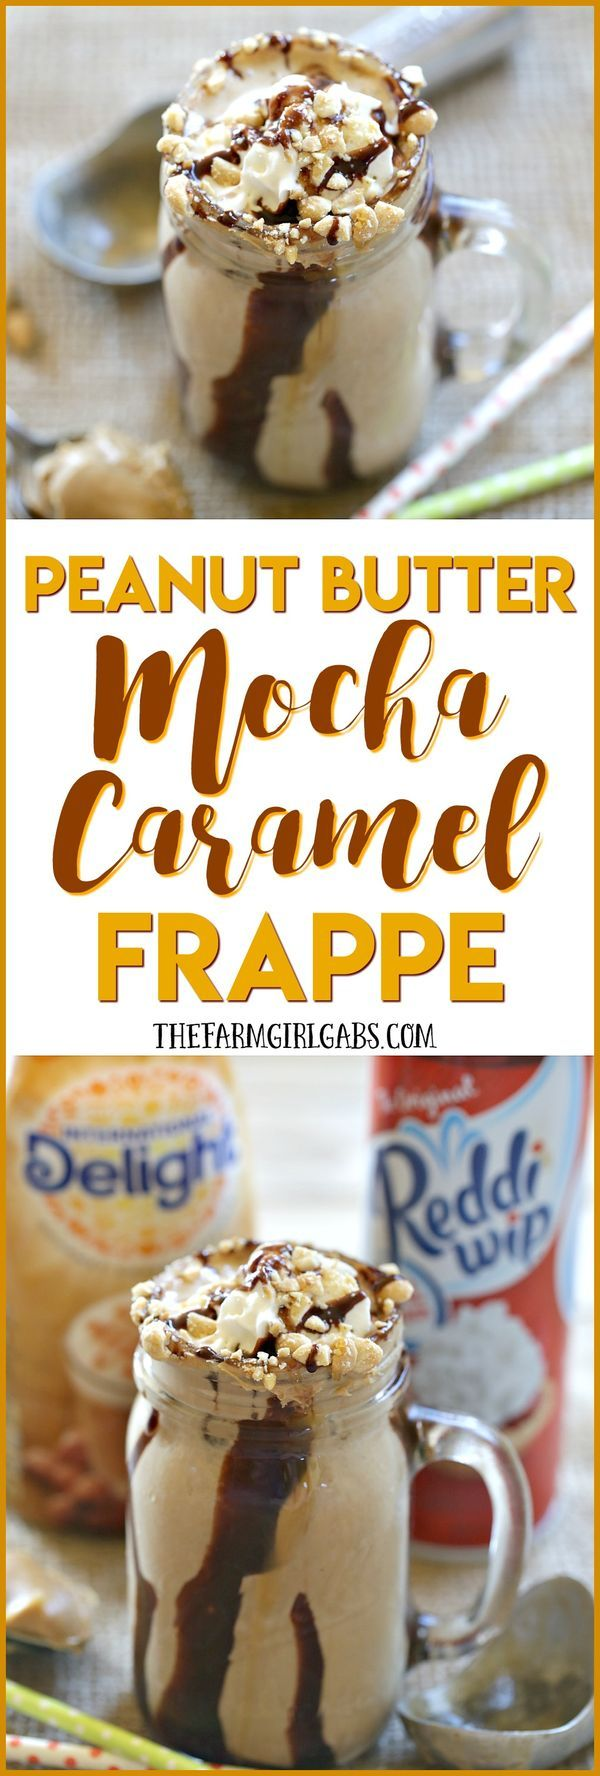 Ready for a cool and refreshing ice cream coffee drink to celebrate summer? Try this delicious Peanut Butter Mocha Caramel Frappe recipe! It's the perfect cool down treat.